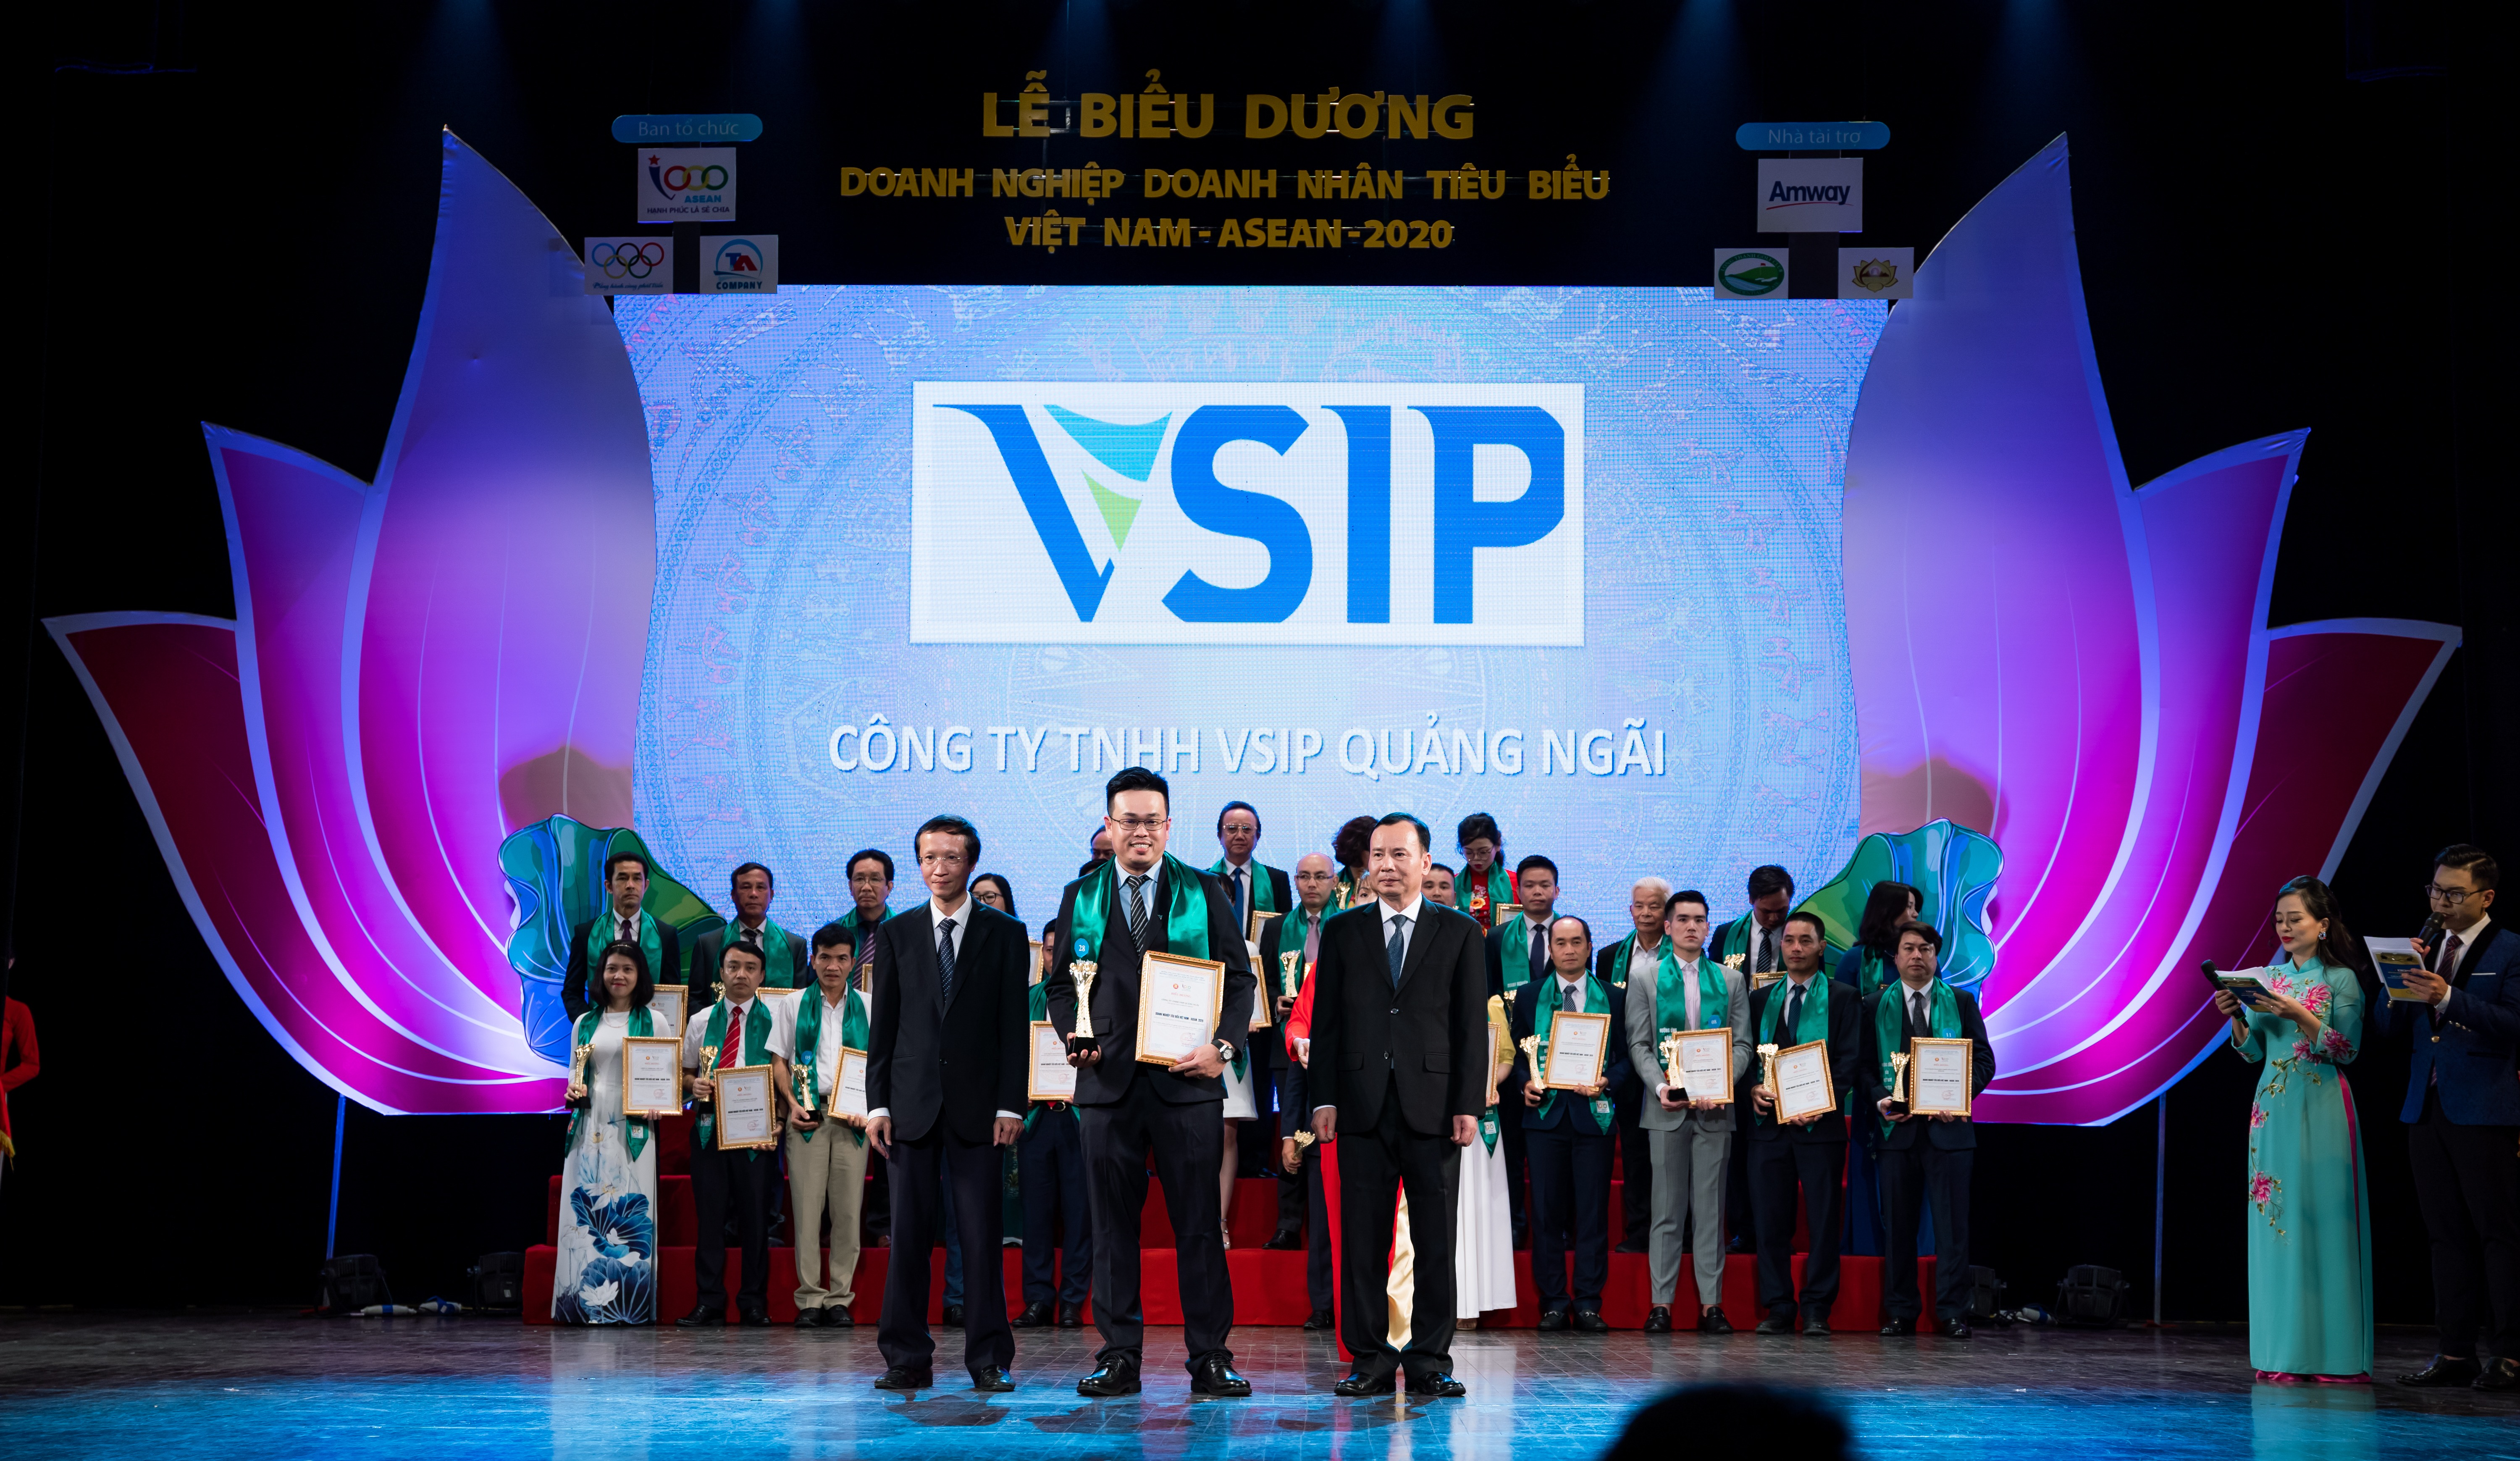 VSIP QUANG NGAI JOINED ASEAN BUSSINESS FORUM +3